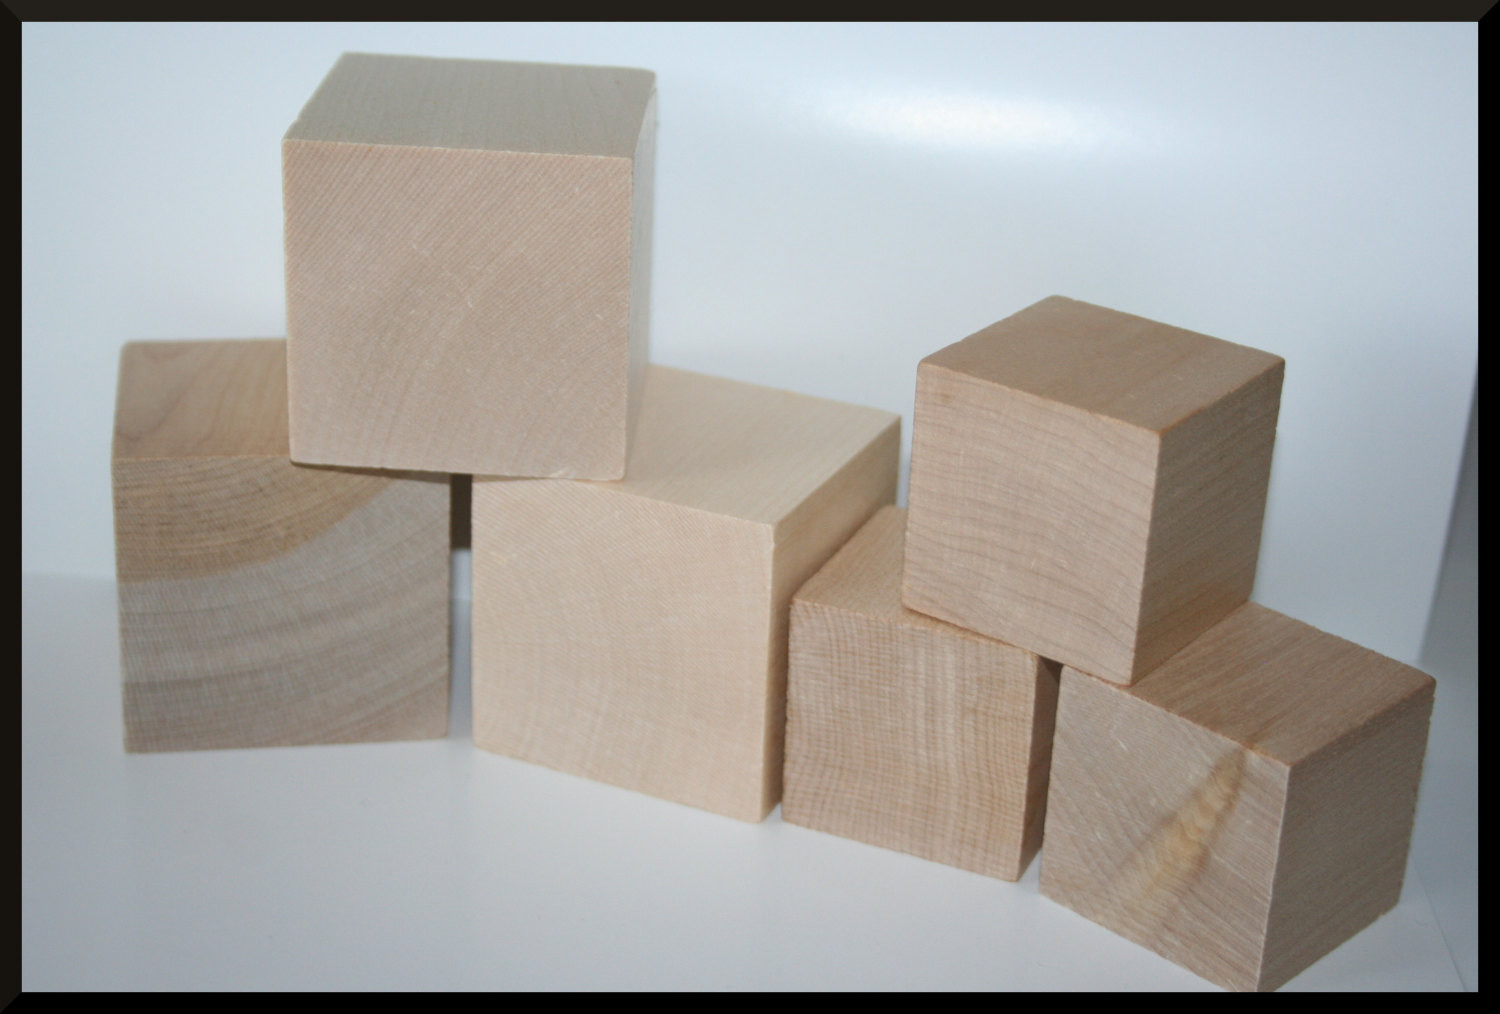 DIY Wooden Blocks  50 Wooden Blocks DIY Wood Blocks Wood Cubes Square